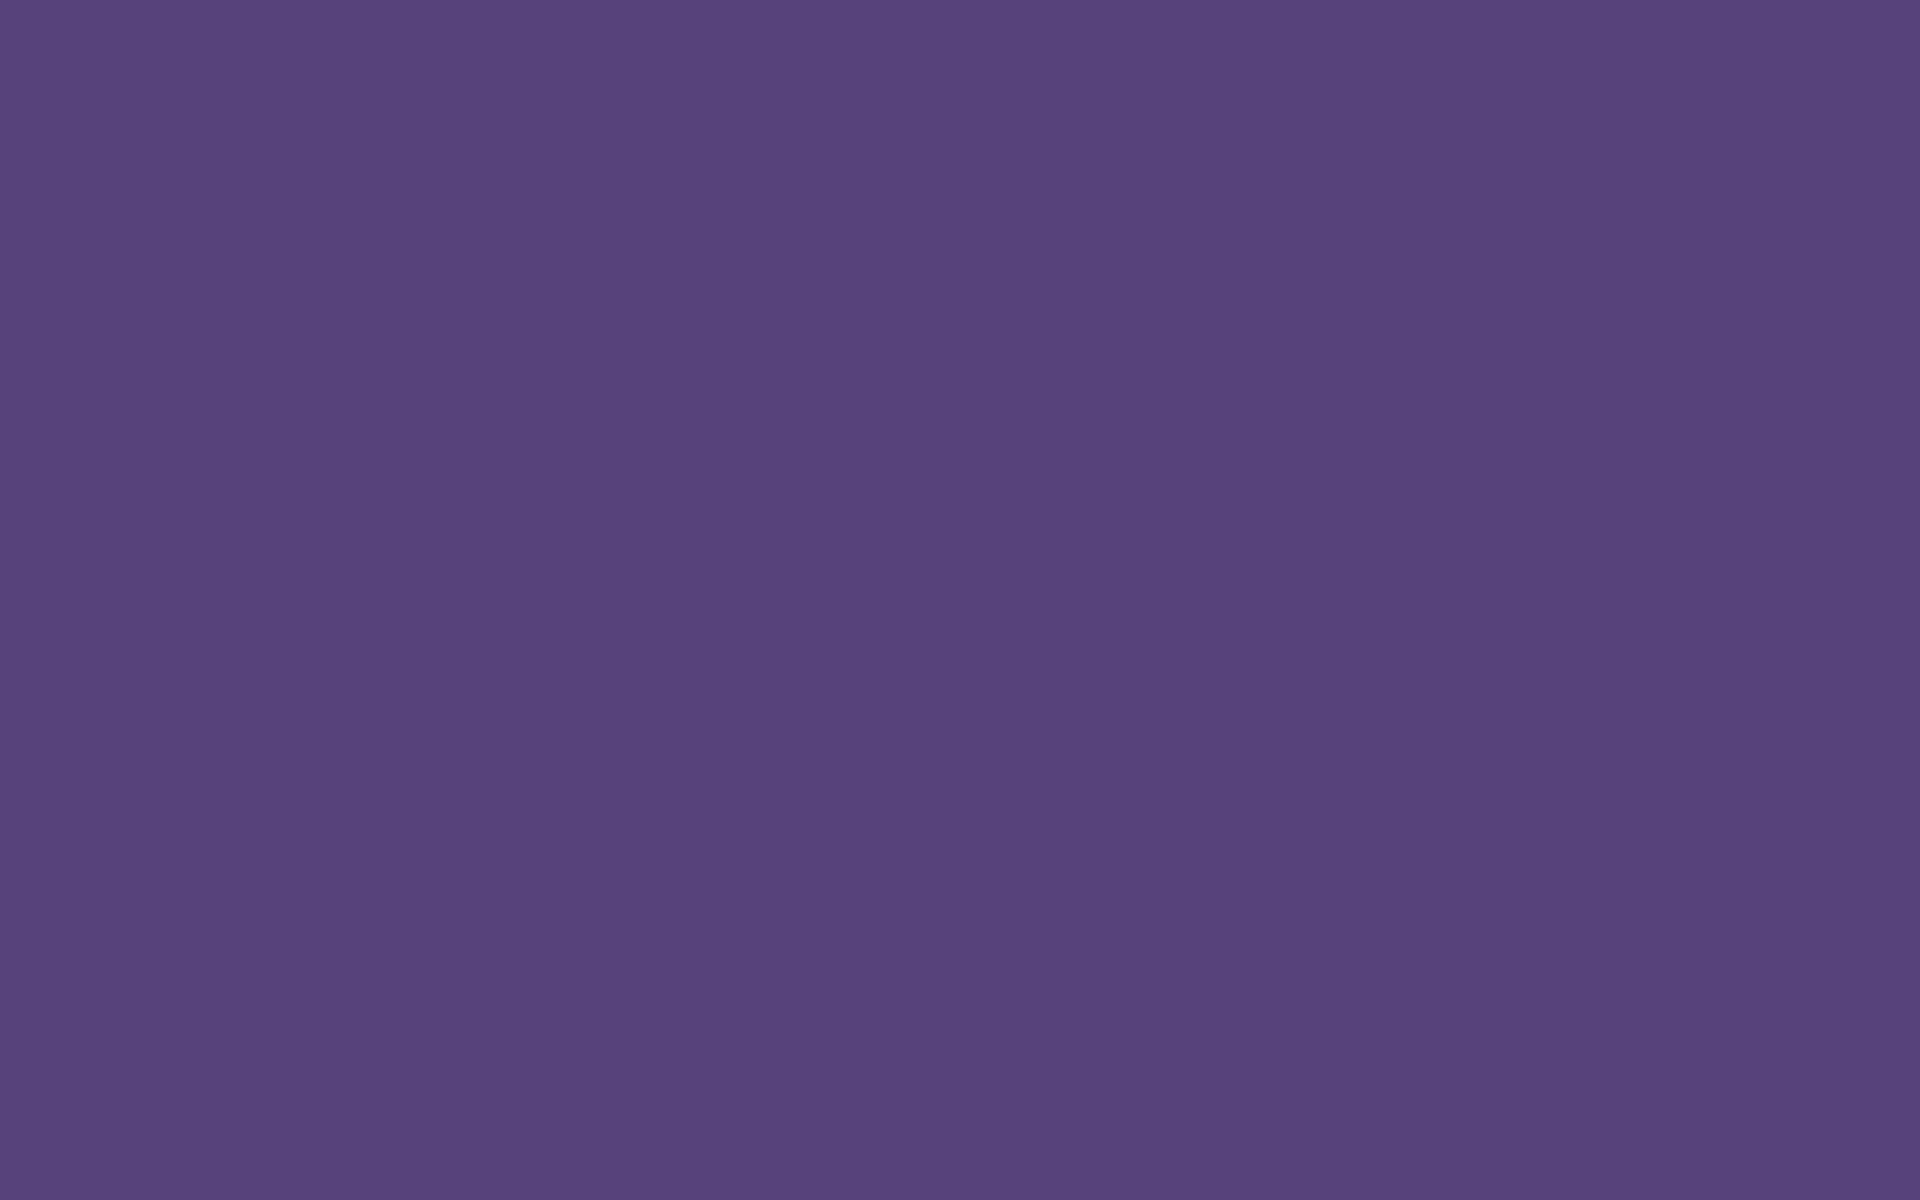 1920x1200 Cyber Grape Solid Color Background